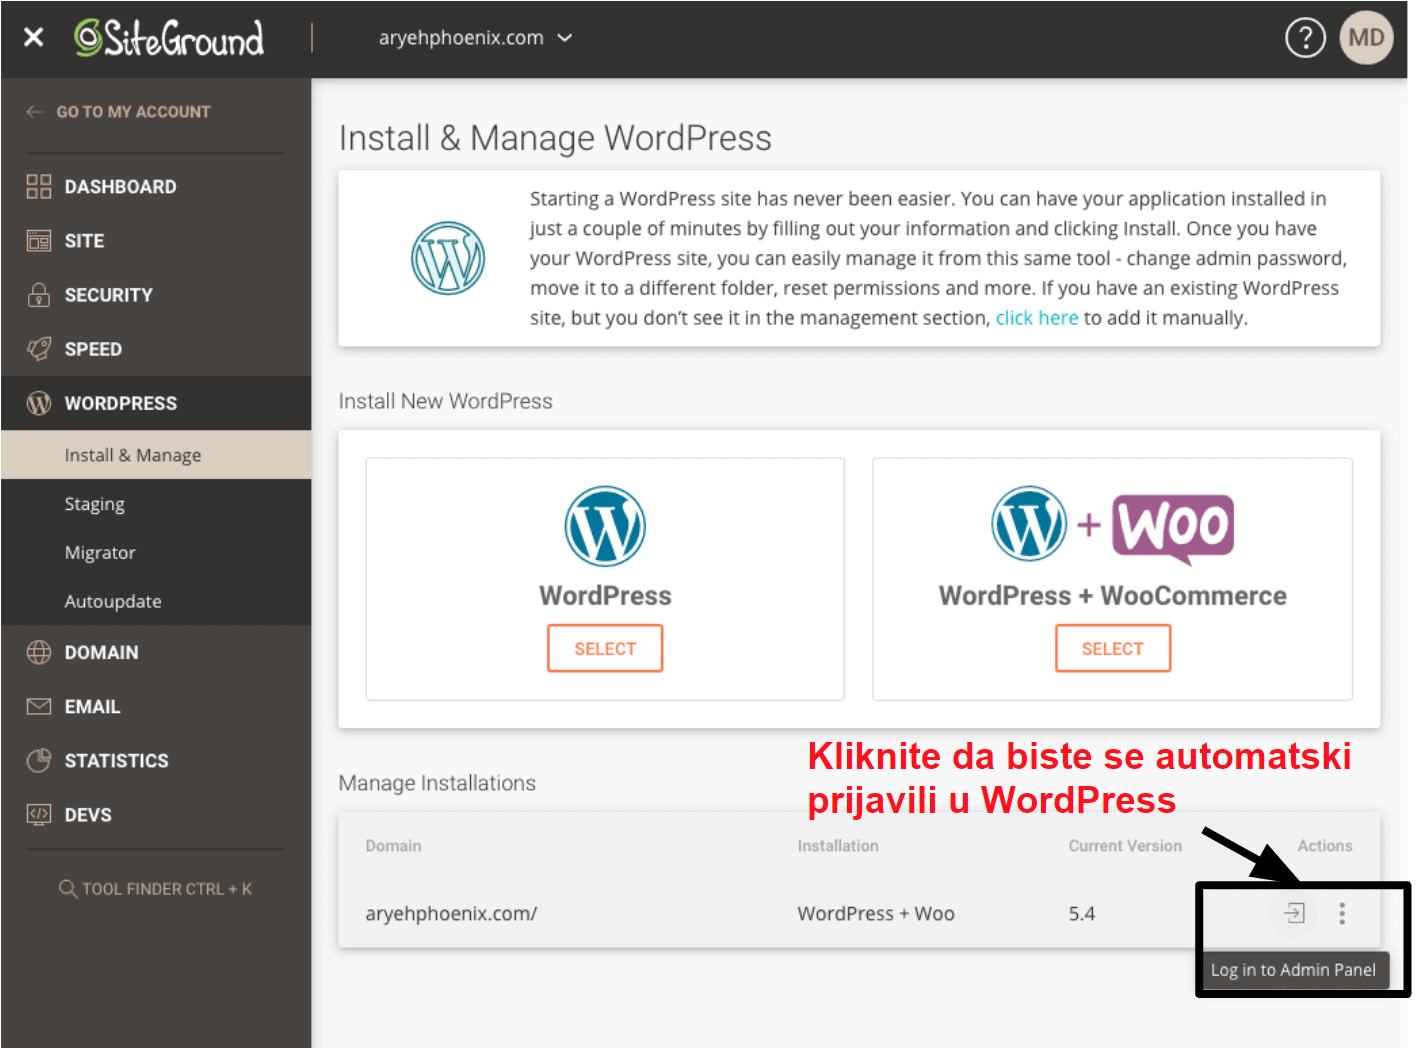 SiteGround offers a one click login option for your WordPress dashboard HR15